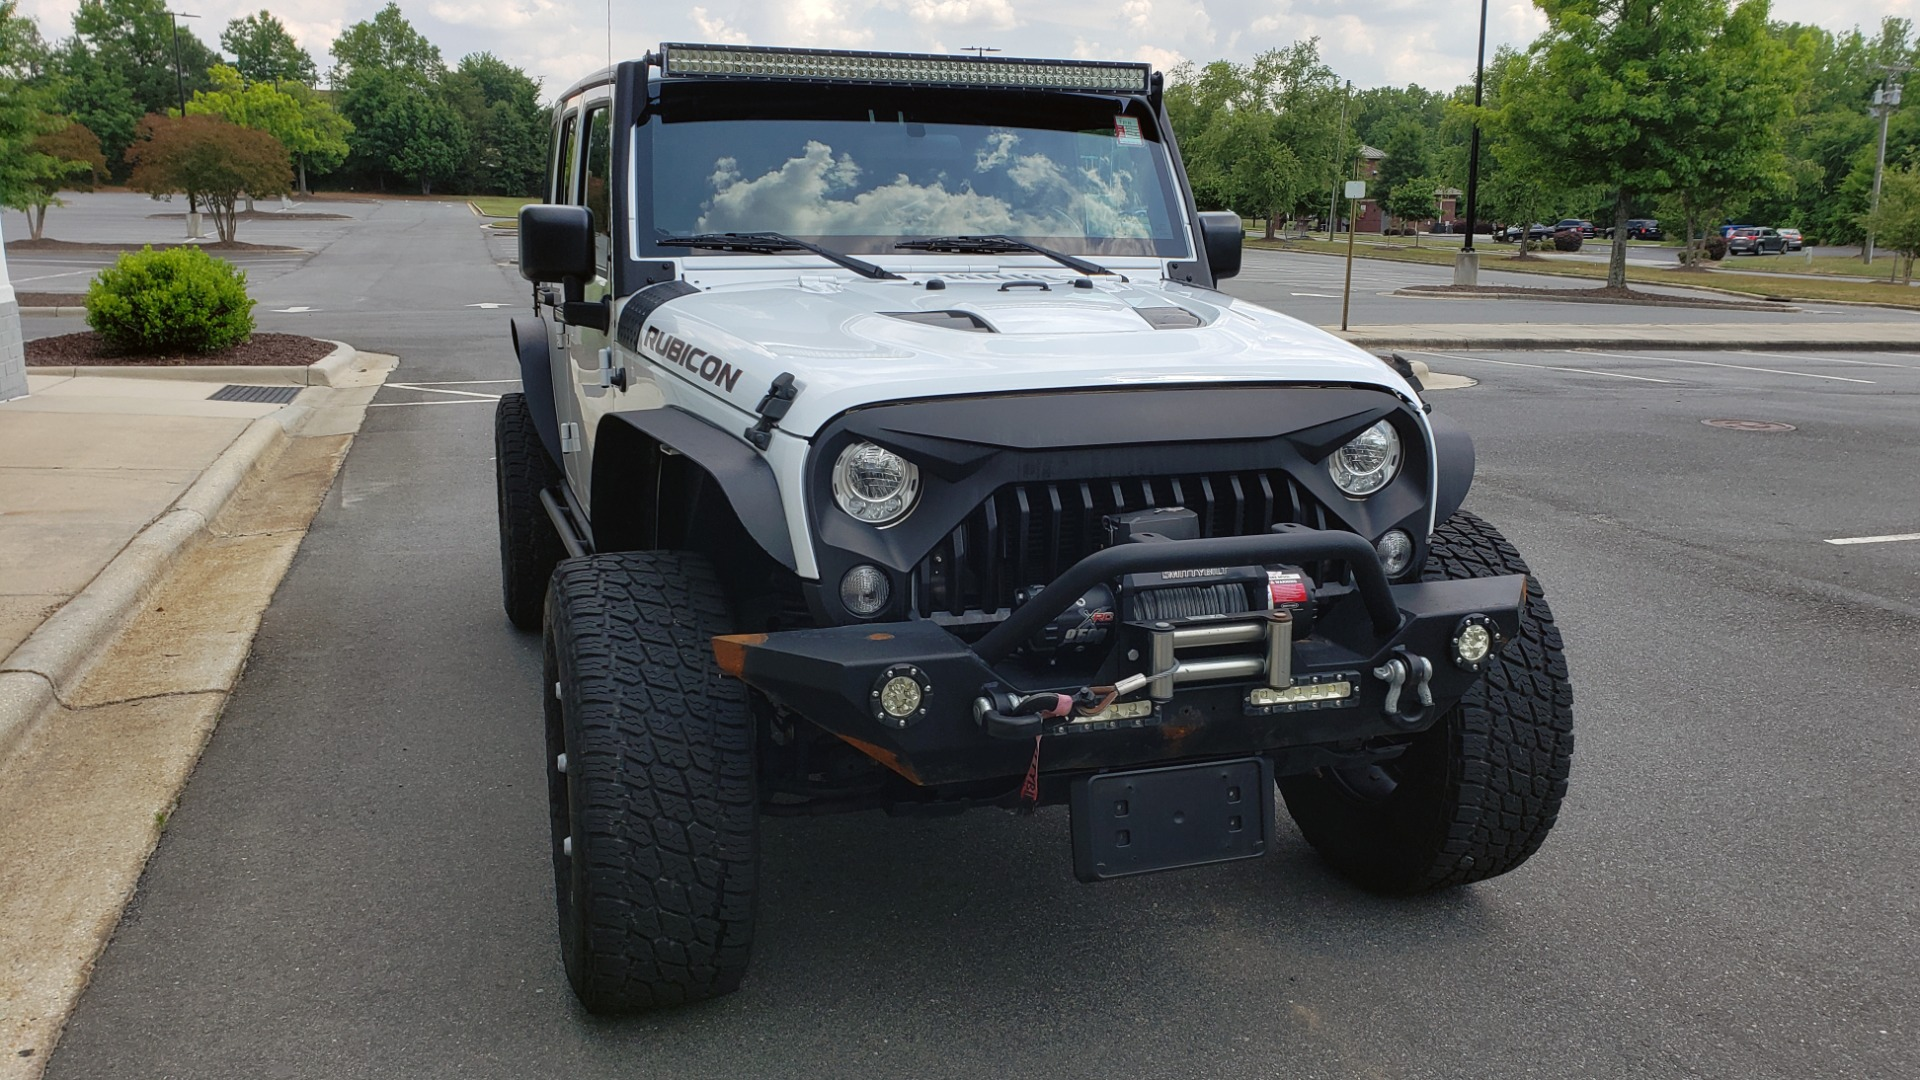 Used 2017 Jeep WRANGLER UNLIMITED RUBICON HARD ROCK 4X4 / 3.6L V6 / 5-SPD AUTO / NAV / REMOTE START for sale Sold at Formula Imports in Charlotte NC 28227 14